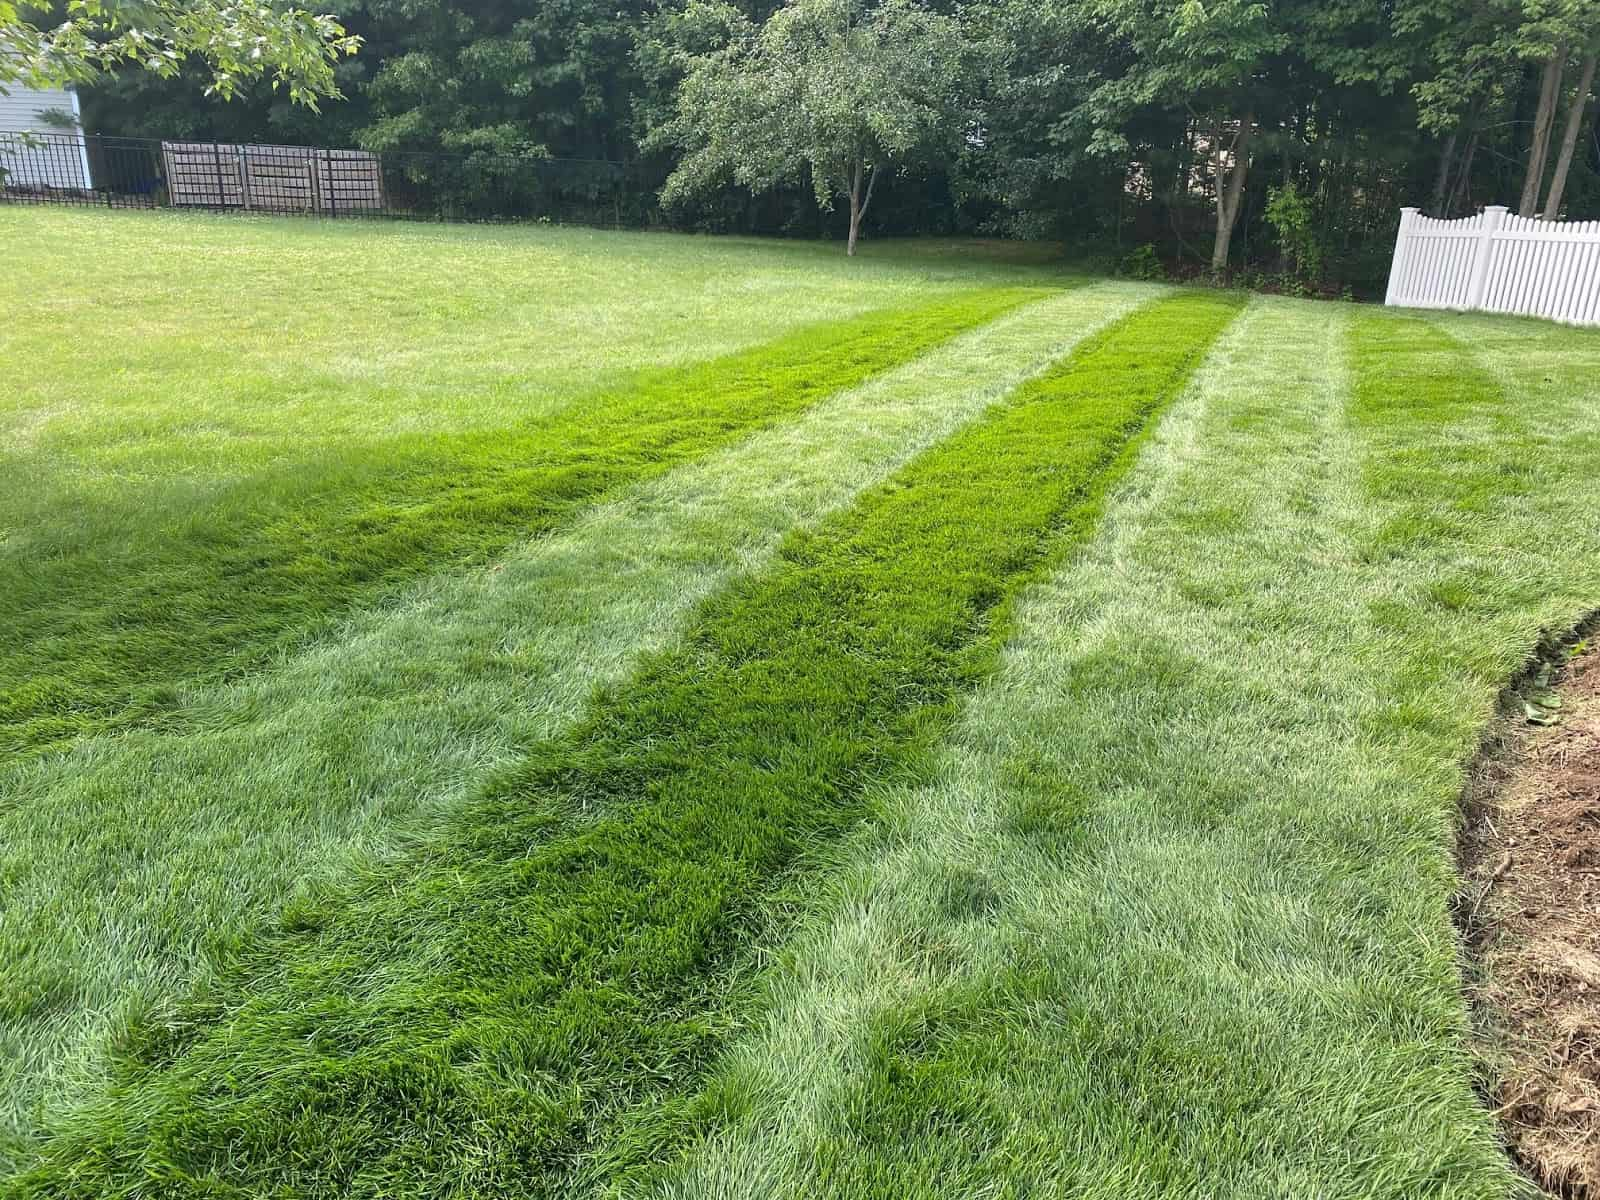 Stress Free Lawn in Summer